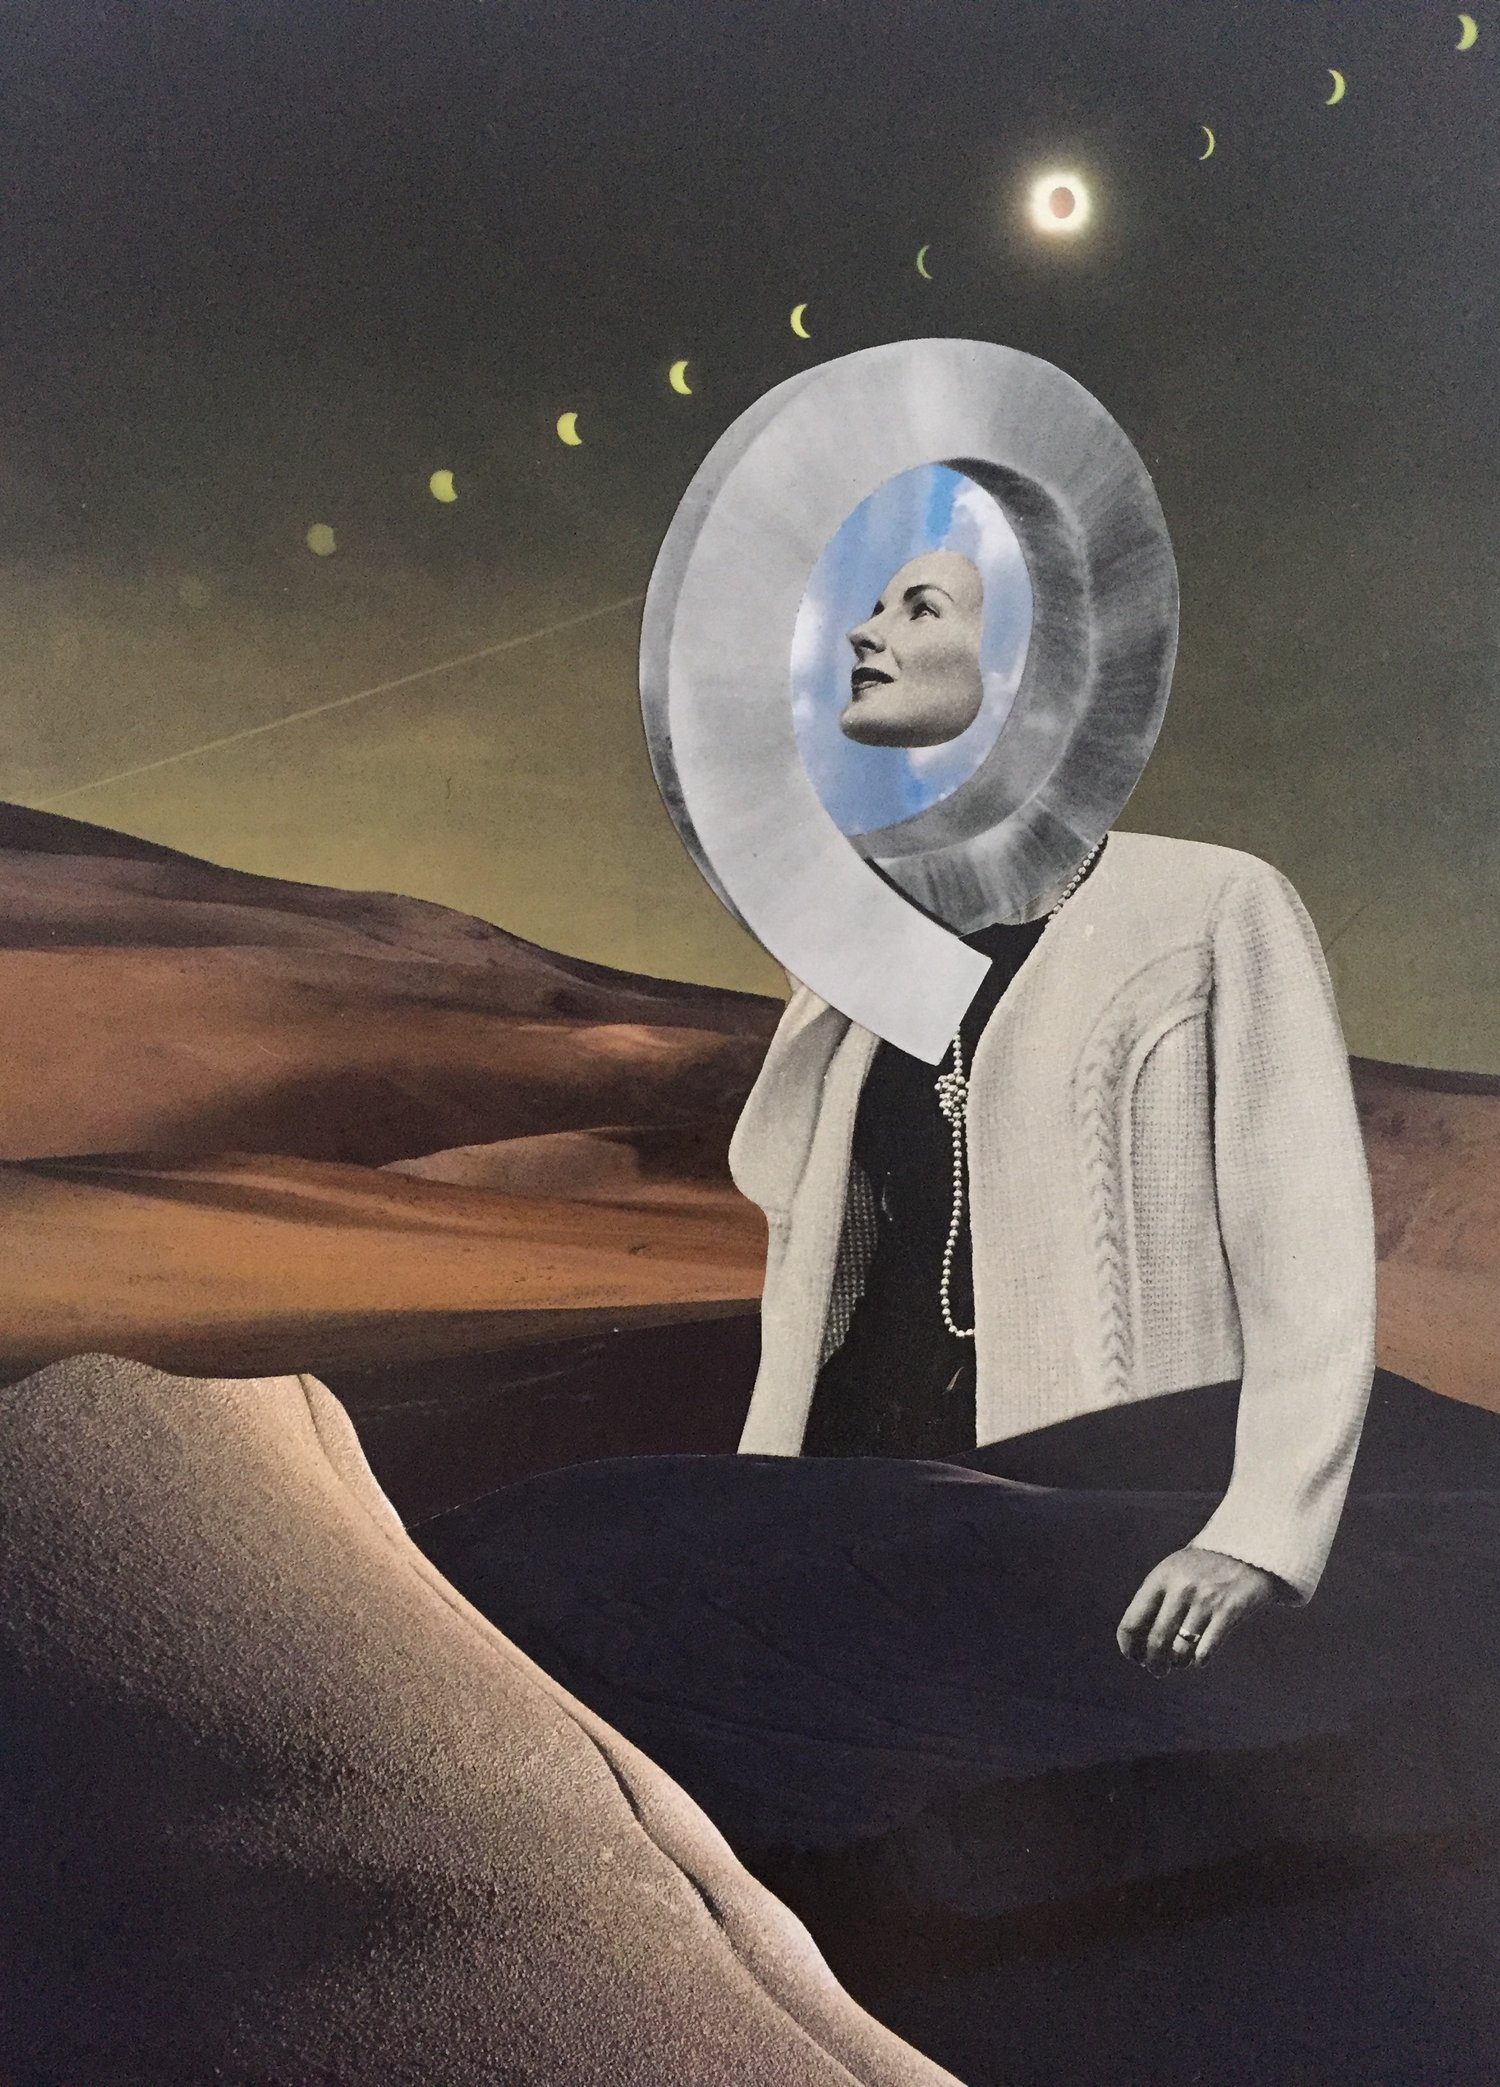 "Beyond This Broken Promise   11"" x 15"" Hand Cut Paper Collage on Cold Press Paper"